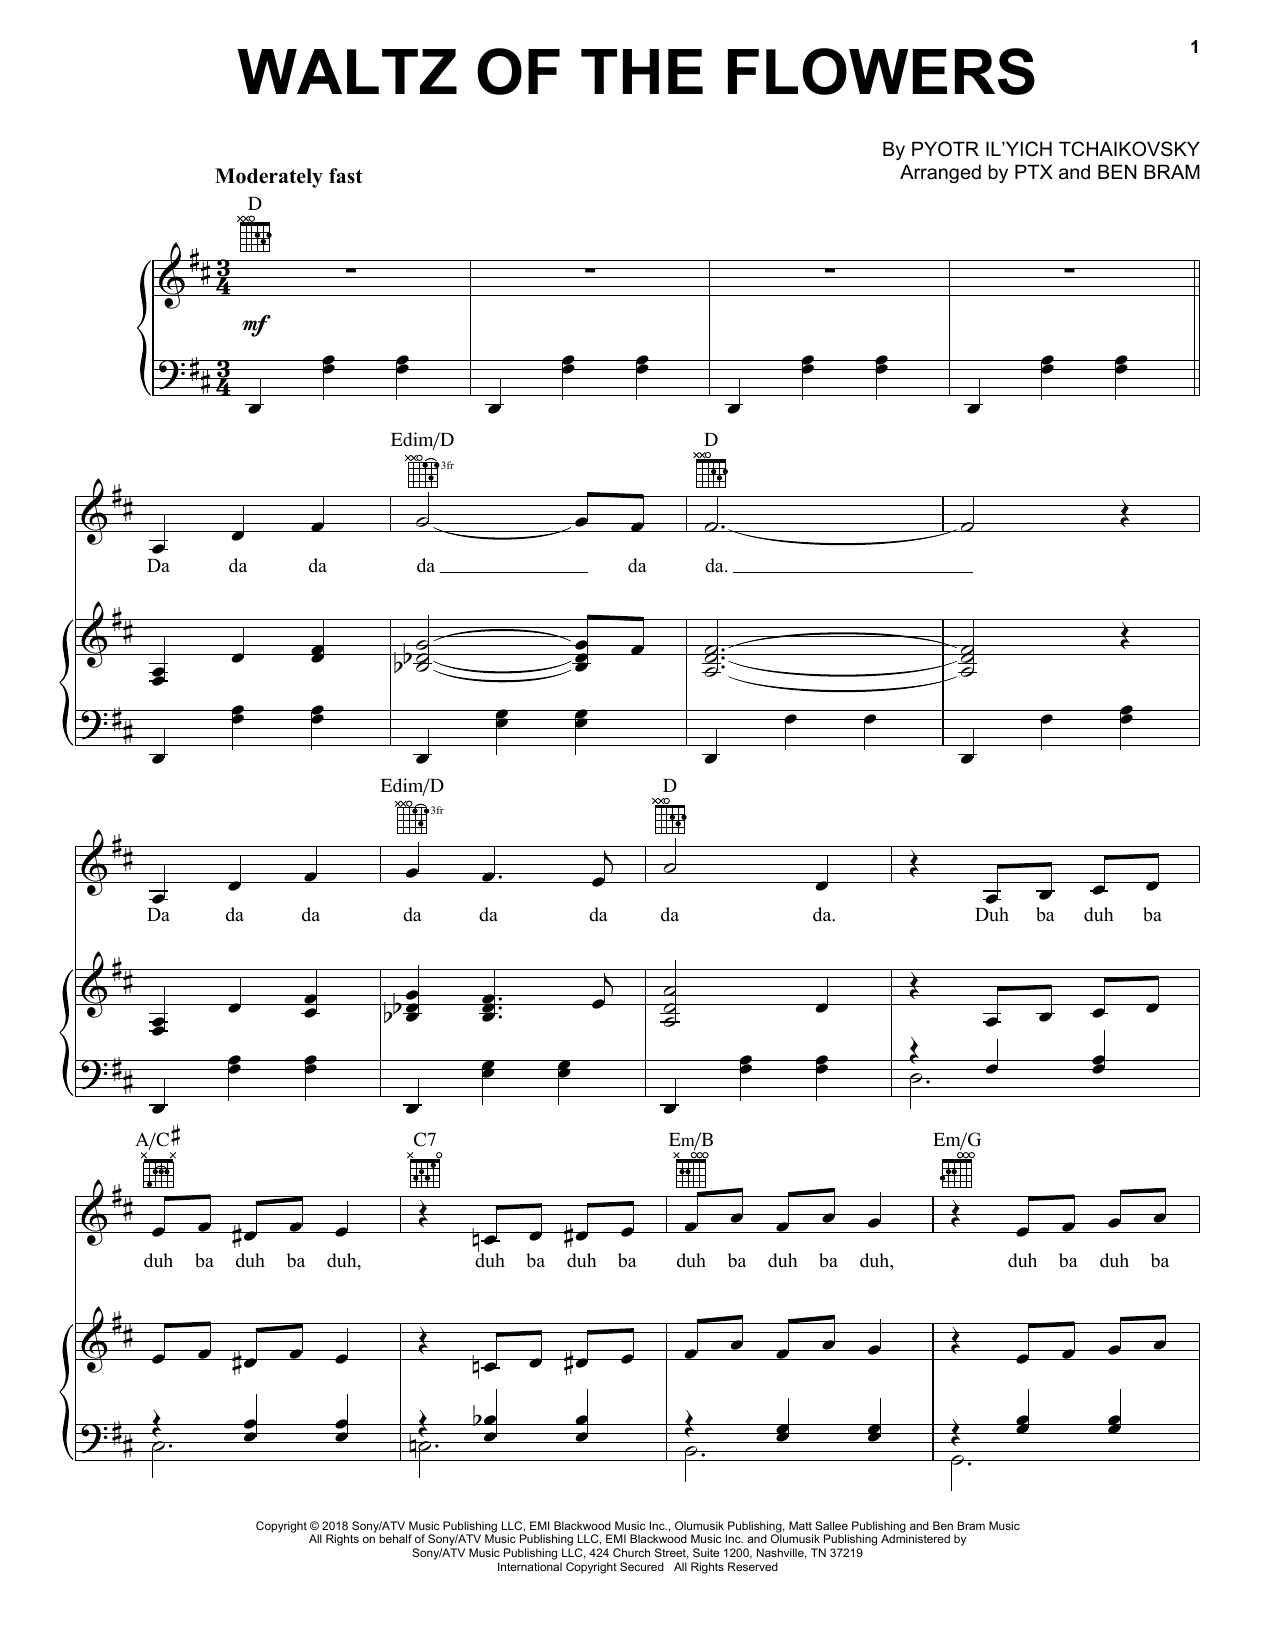 Pentatonix Waltz Of The Flowers sheet music notes and chords